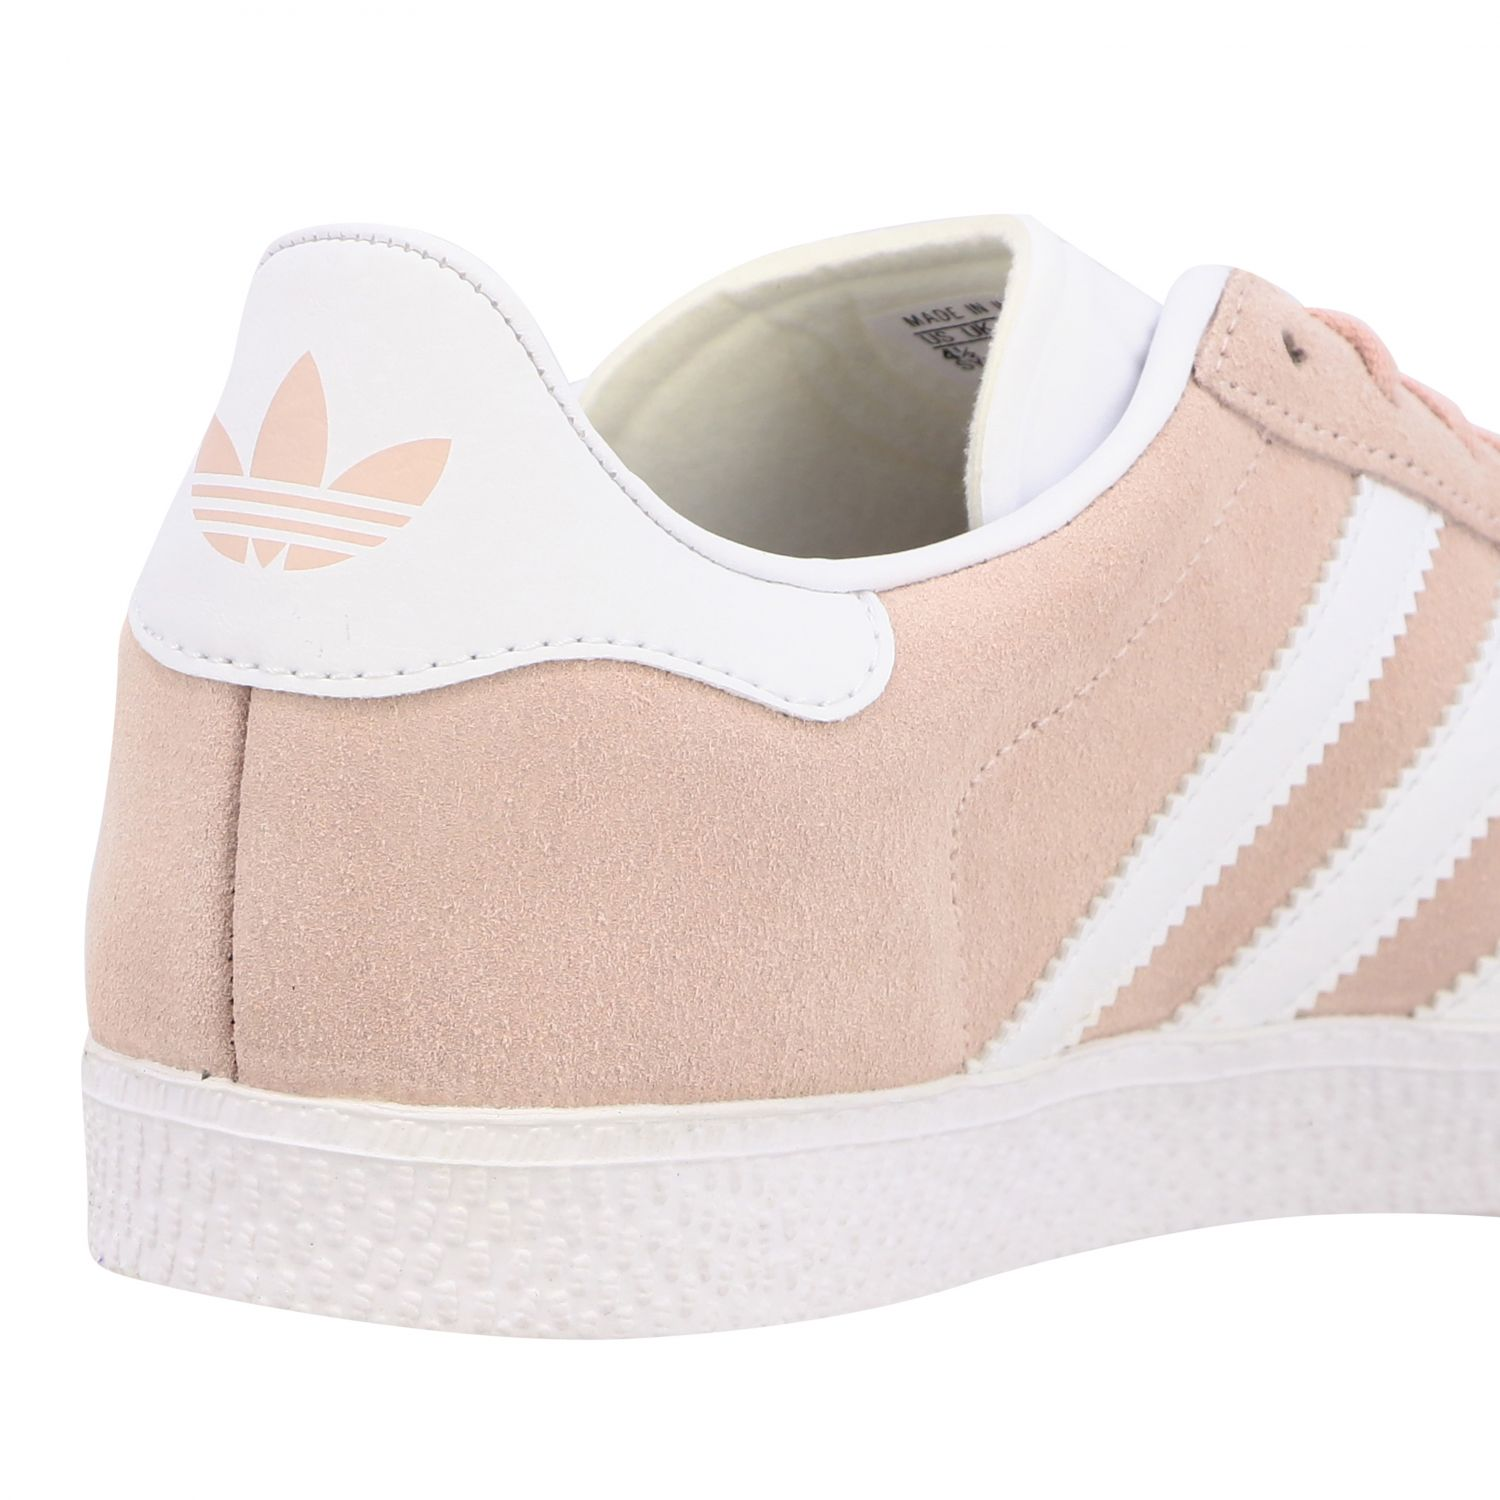 Shoes Adidas Originals: Gazelle J Adidas Originals sneakers in synthetic suede and leather pink 5